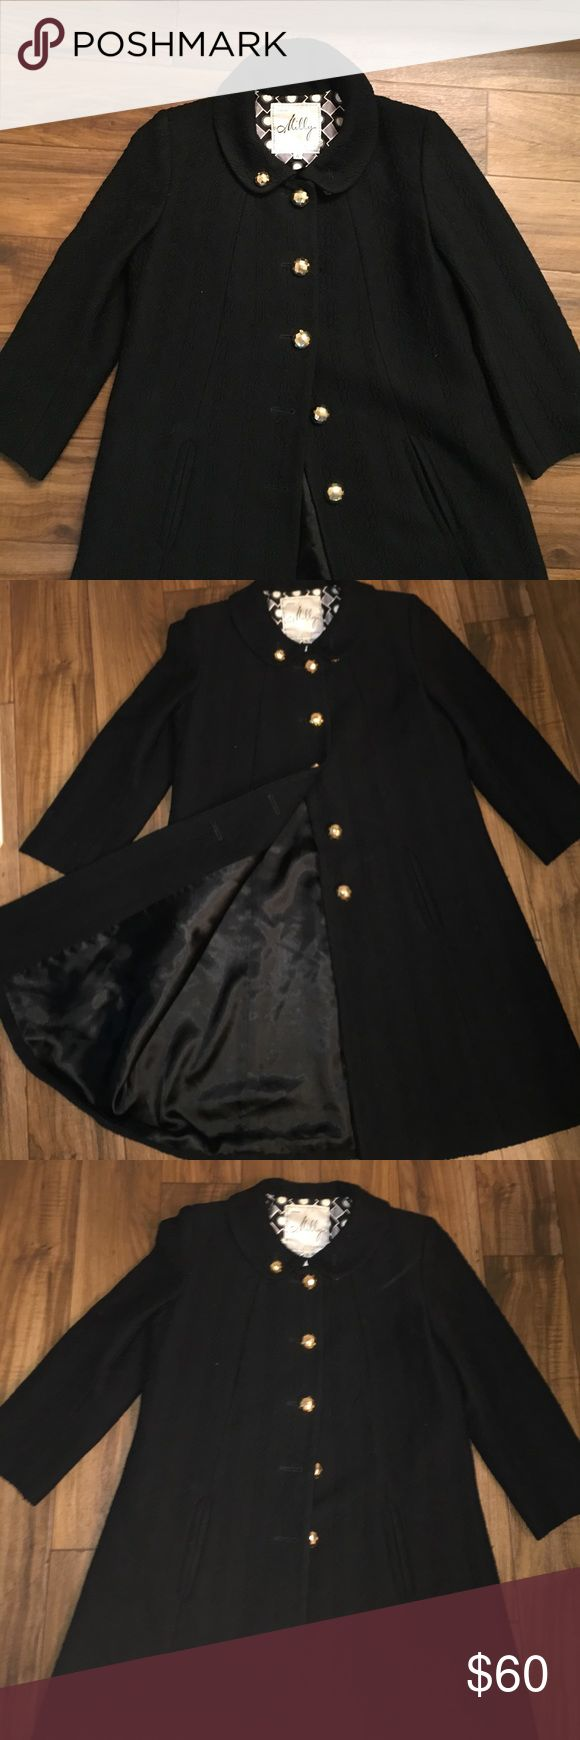 Stylish black pea coat with detailed print! This is a mid-thigh length black pea coat that has only been worn a couple of times. It has a detailed print, pockets and gold buttons. Milly Jackets & Coats Pea Coats